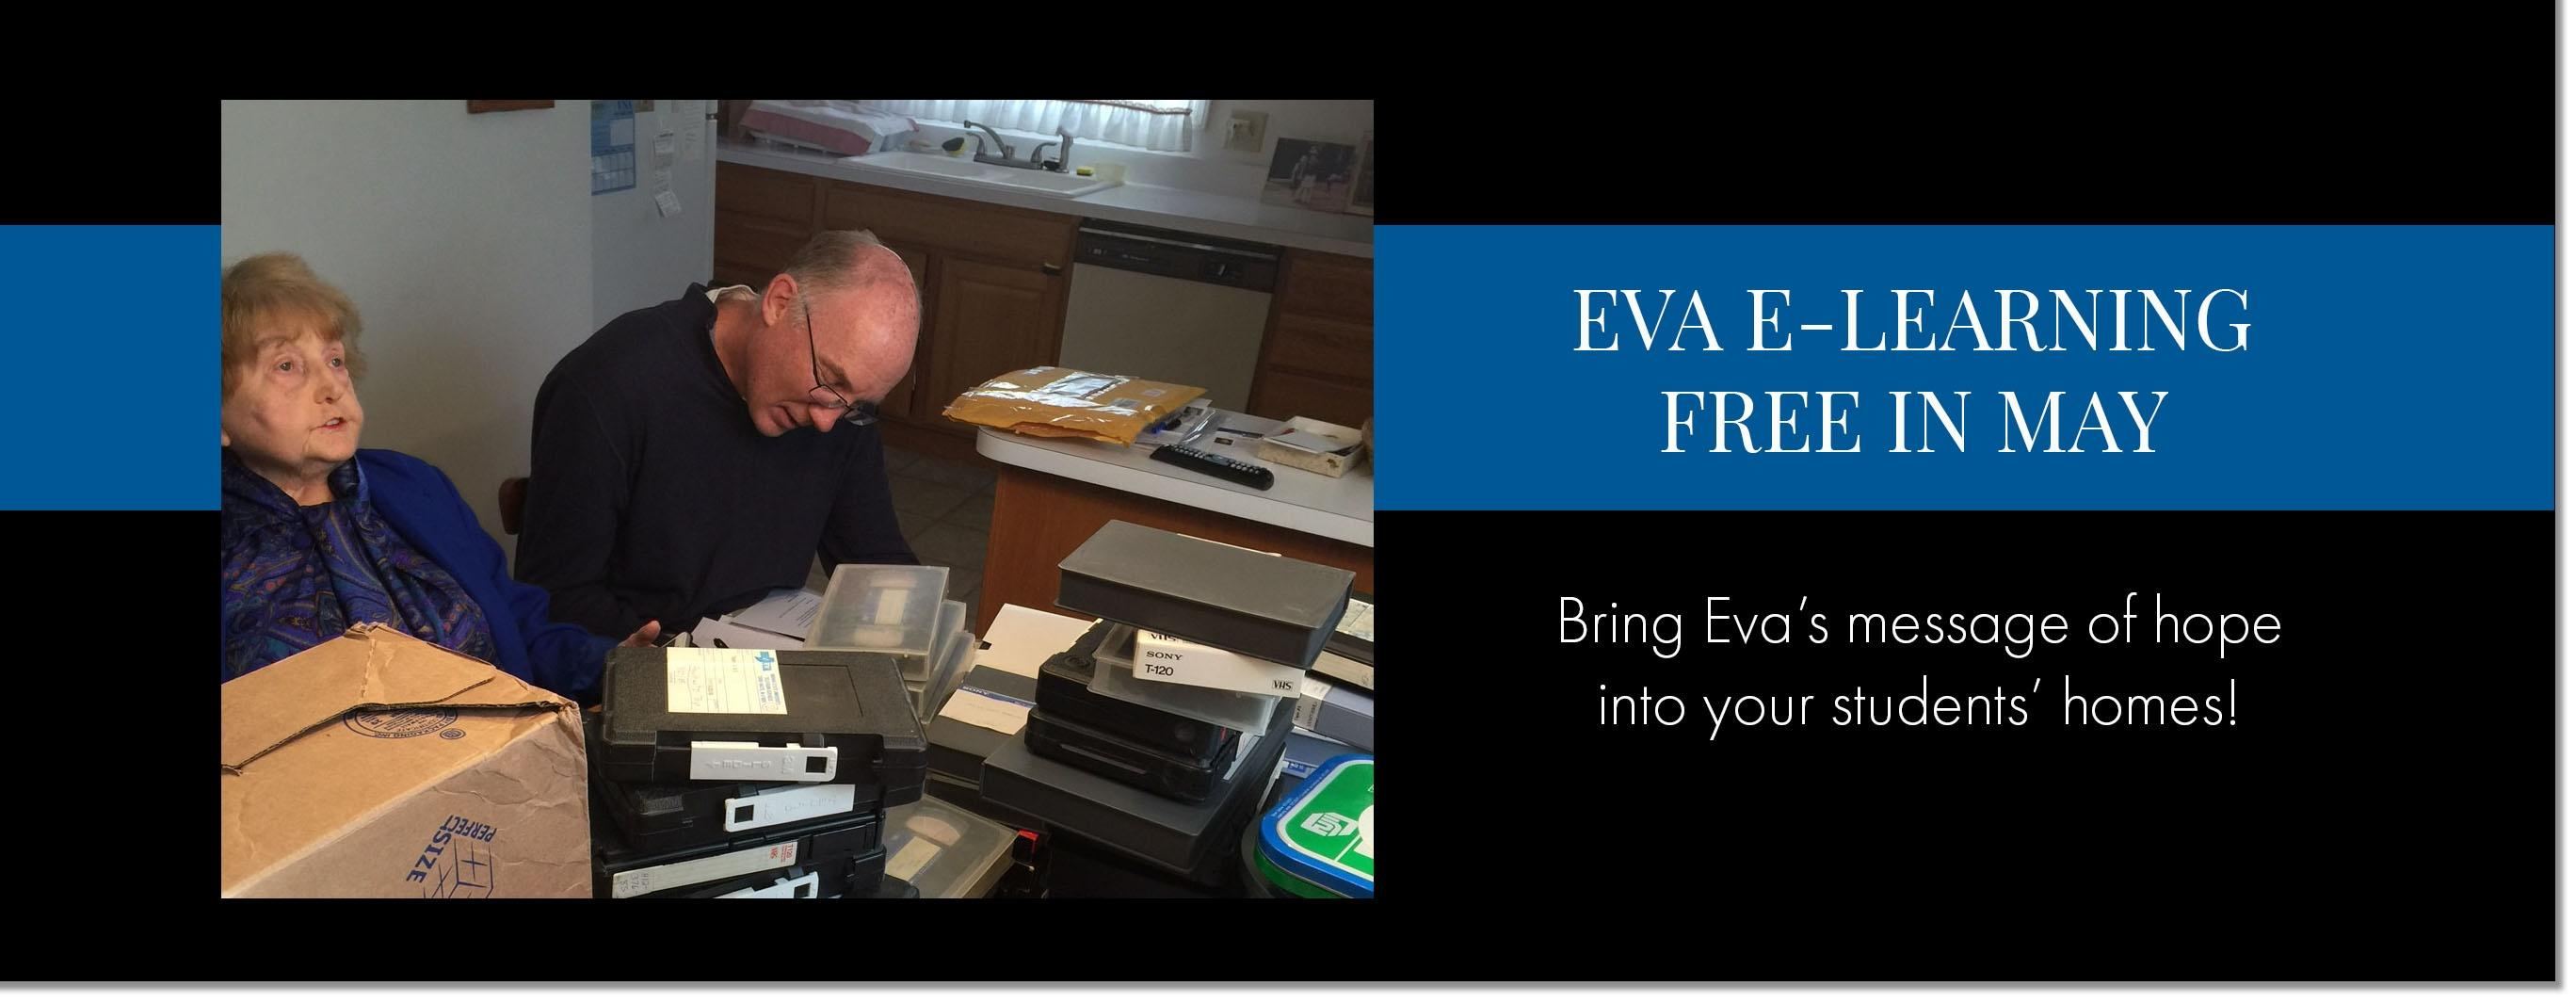 EVA E-LEARNING FREE IN APRIL Bring Eva's message of hope into your students' homes!